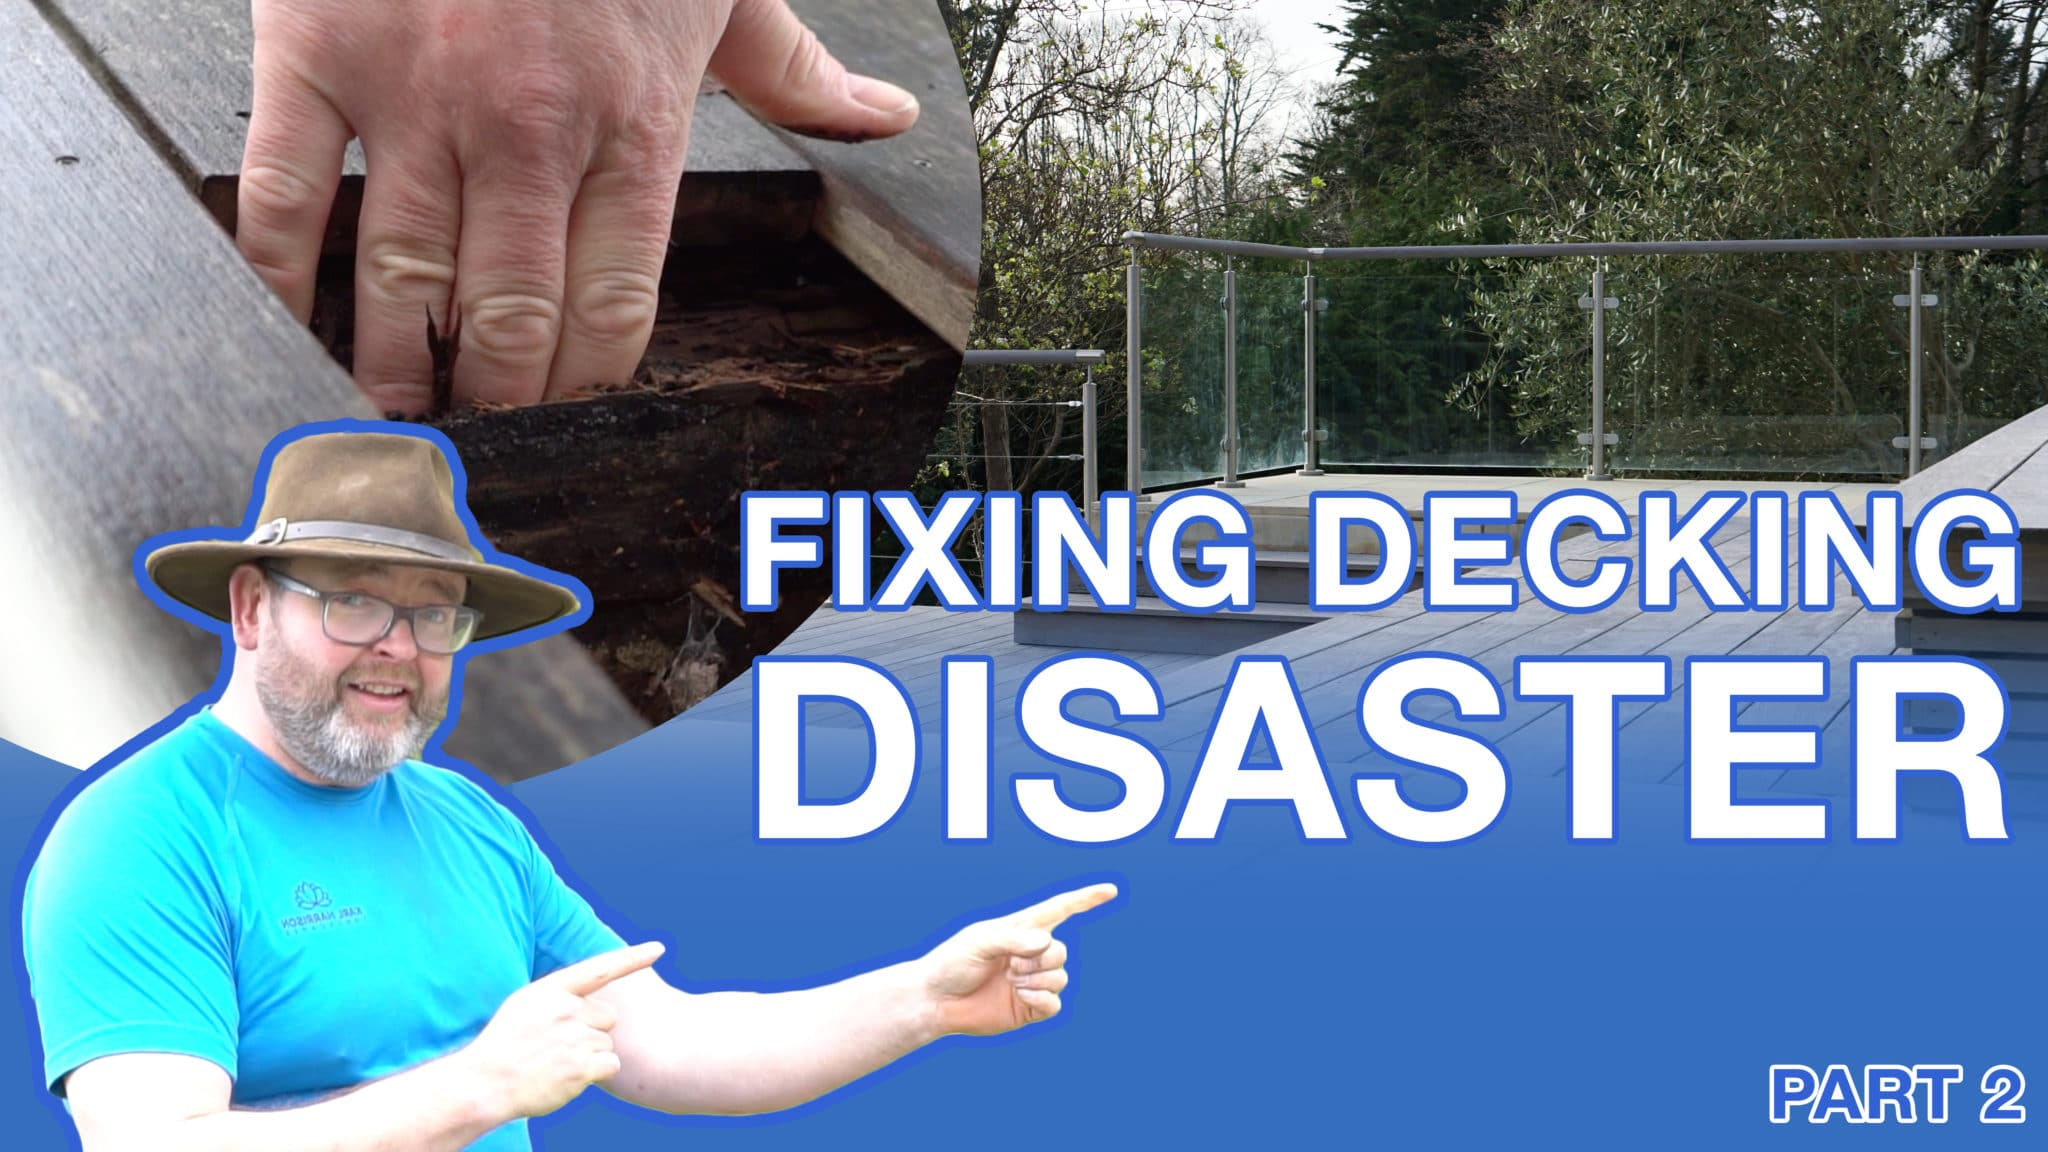 Fixing a Decking Disaster